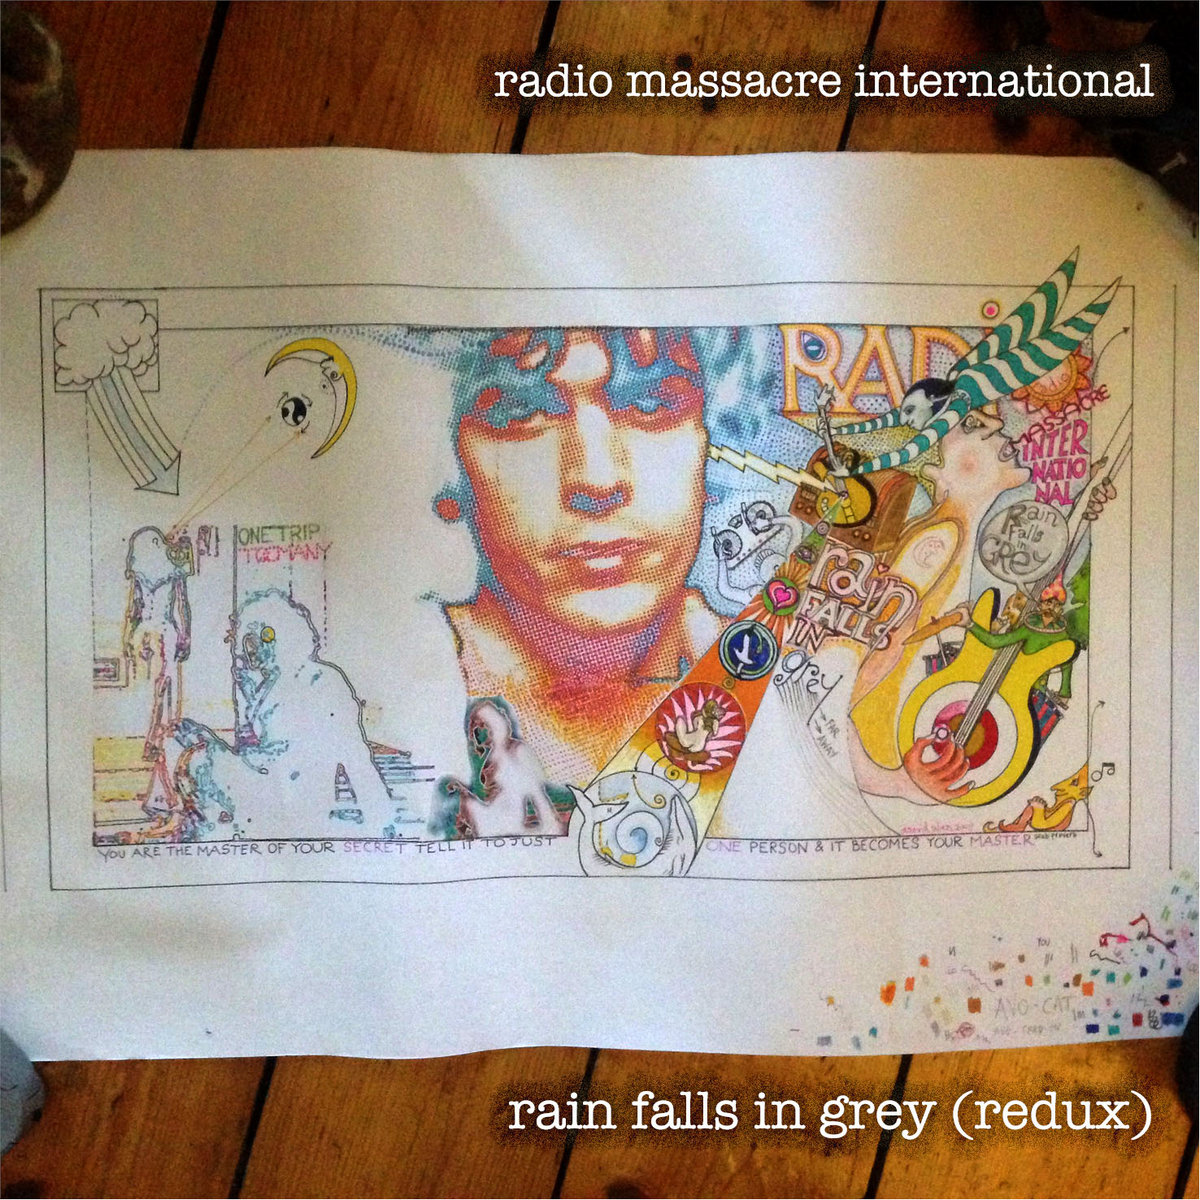 rain falls in grey (redux)